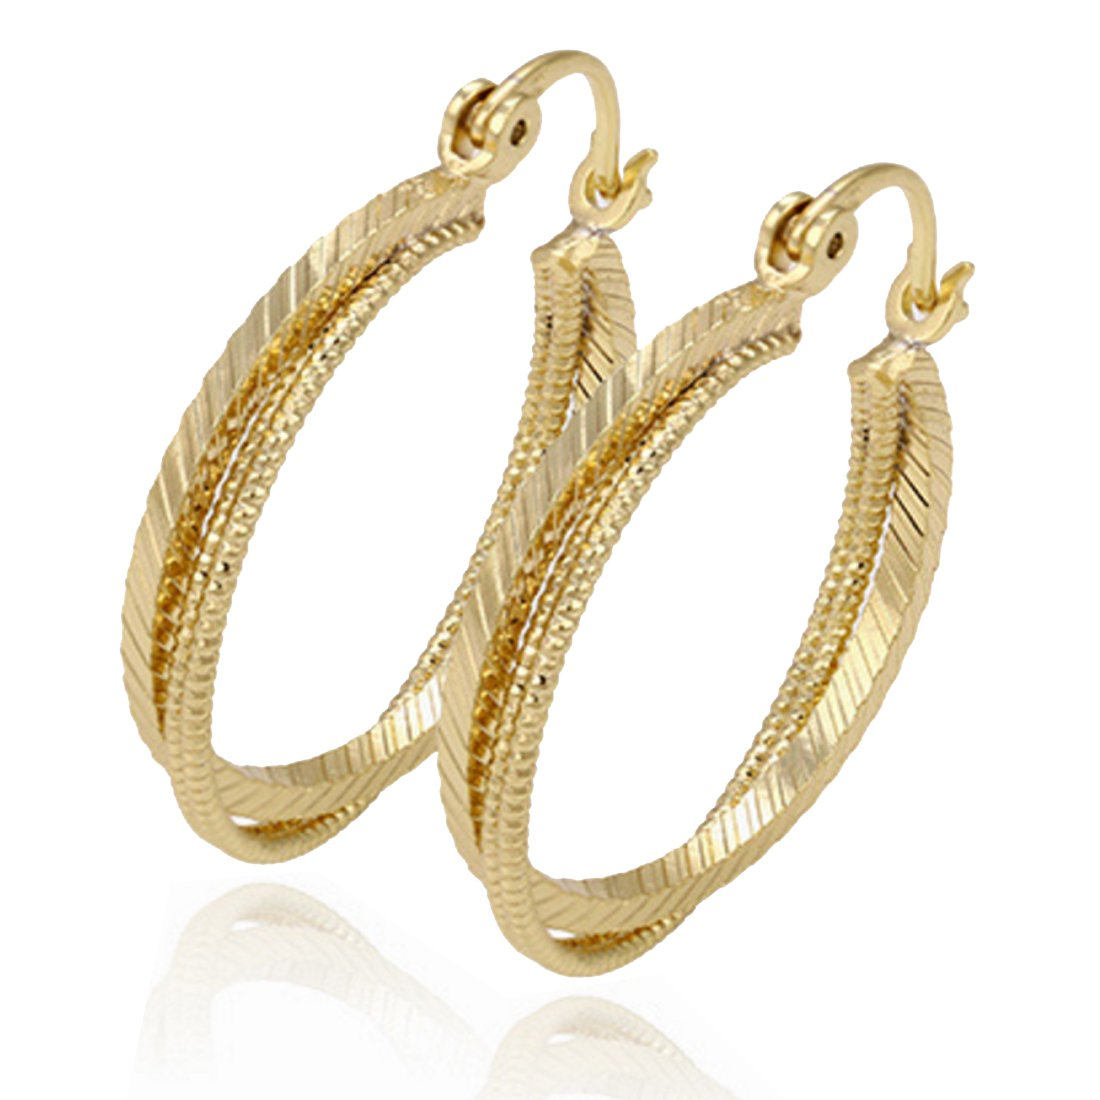 Juvel Jewelry Fashion Noble Style 14K Gold Plated Hoop Earrings 3 Circles Round Shape For Party 90900-1